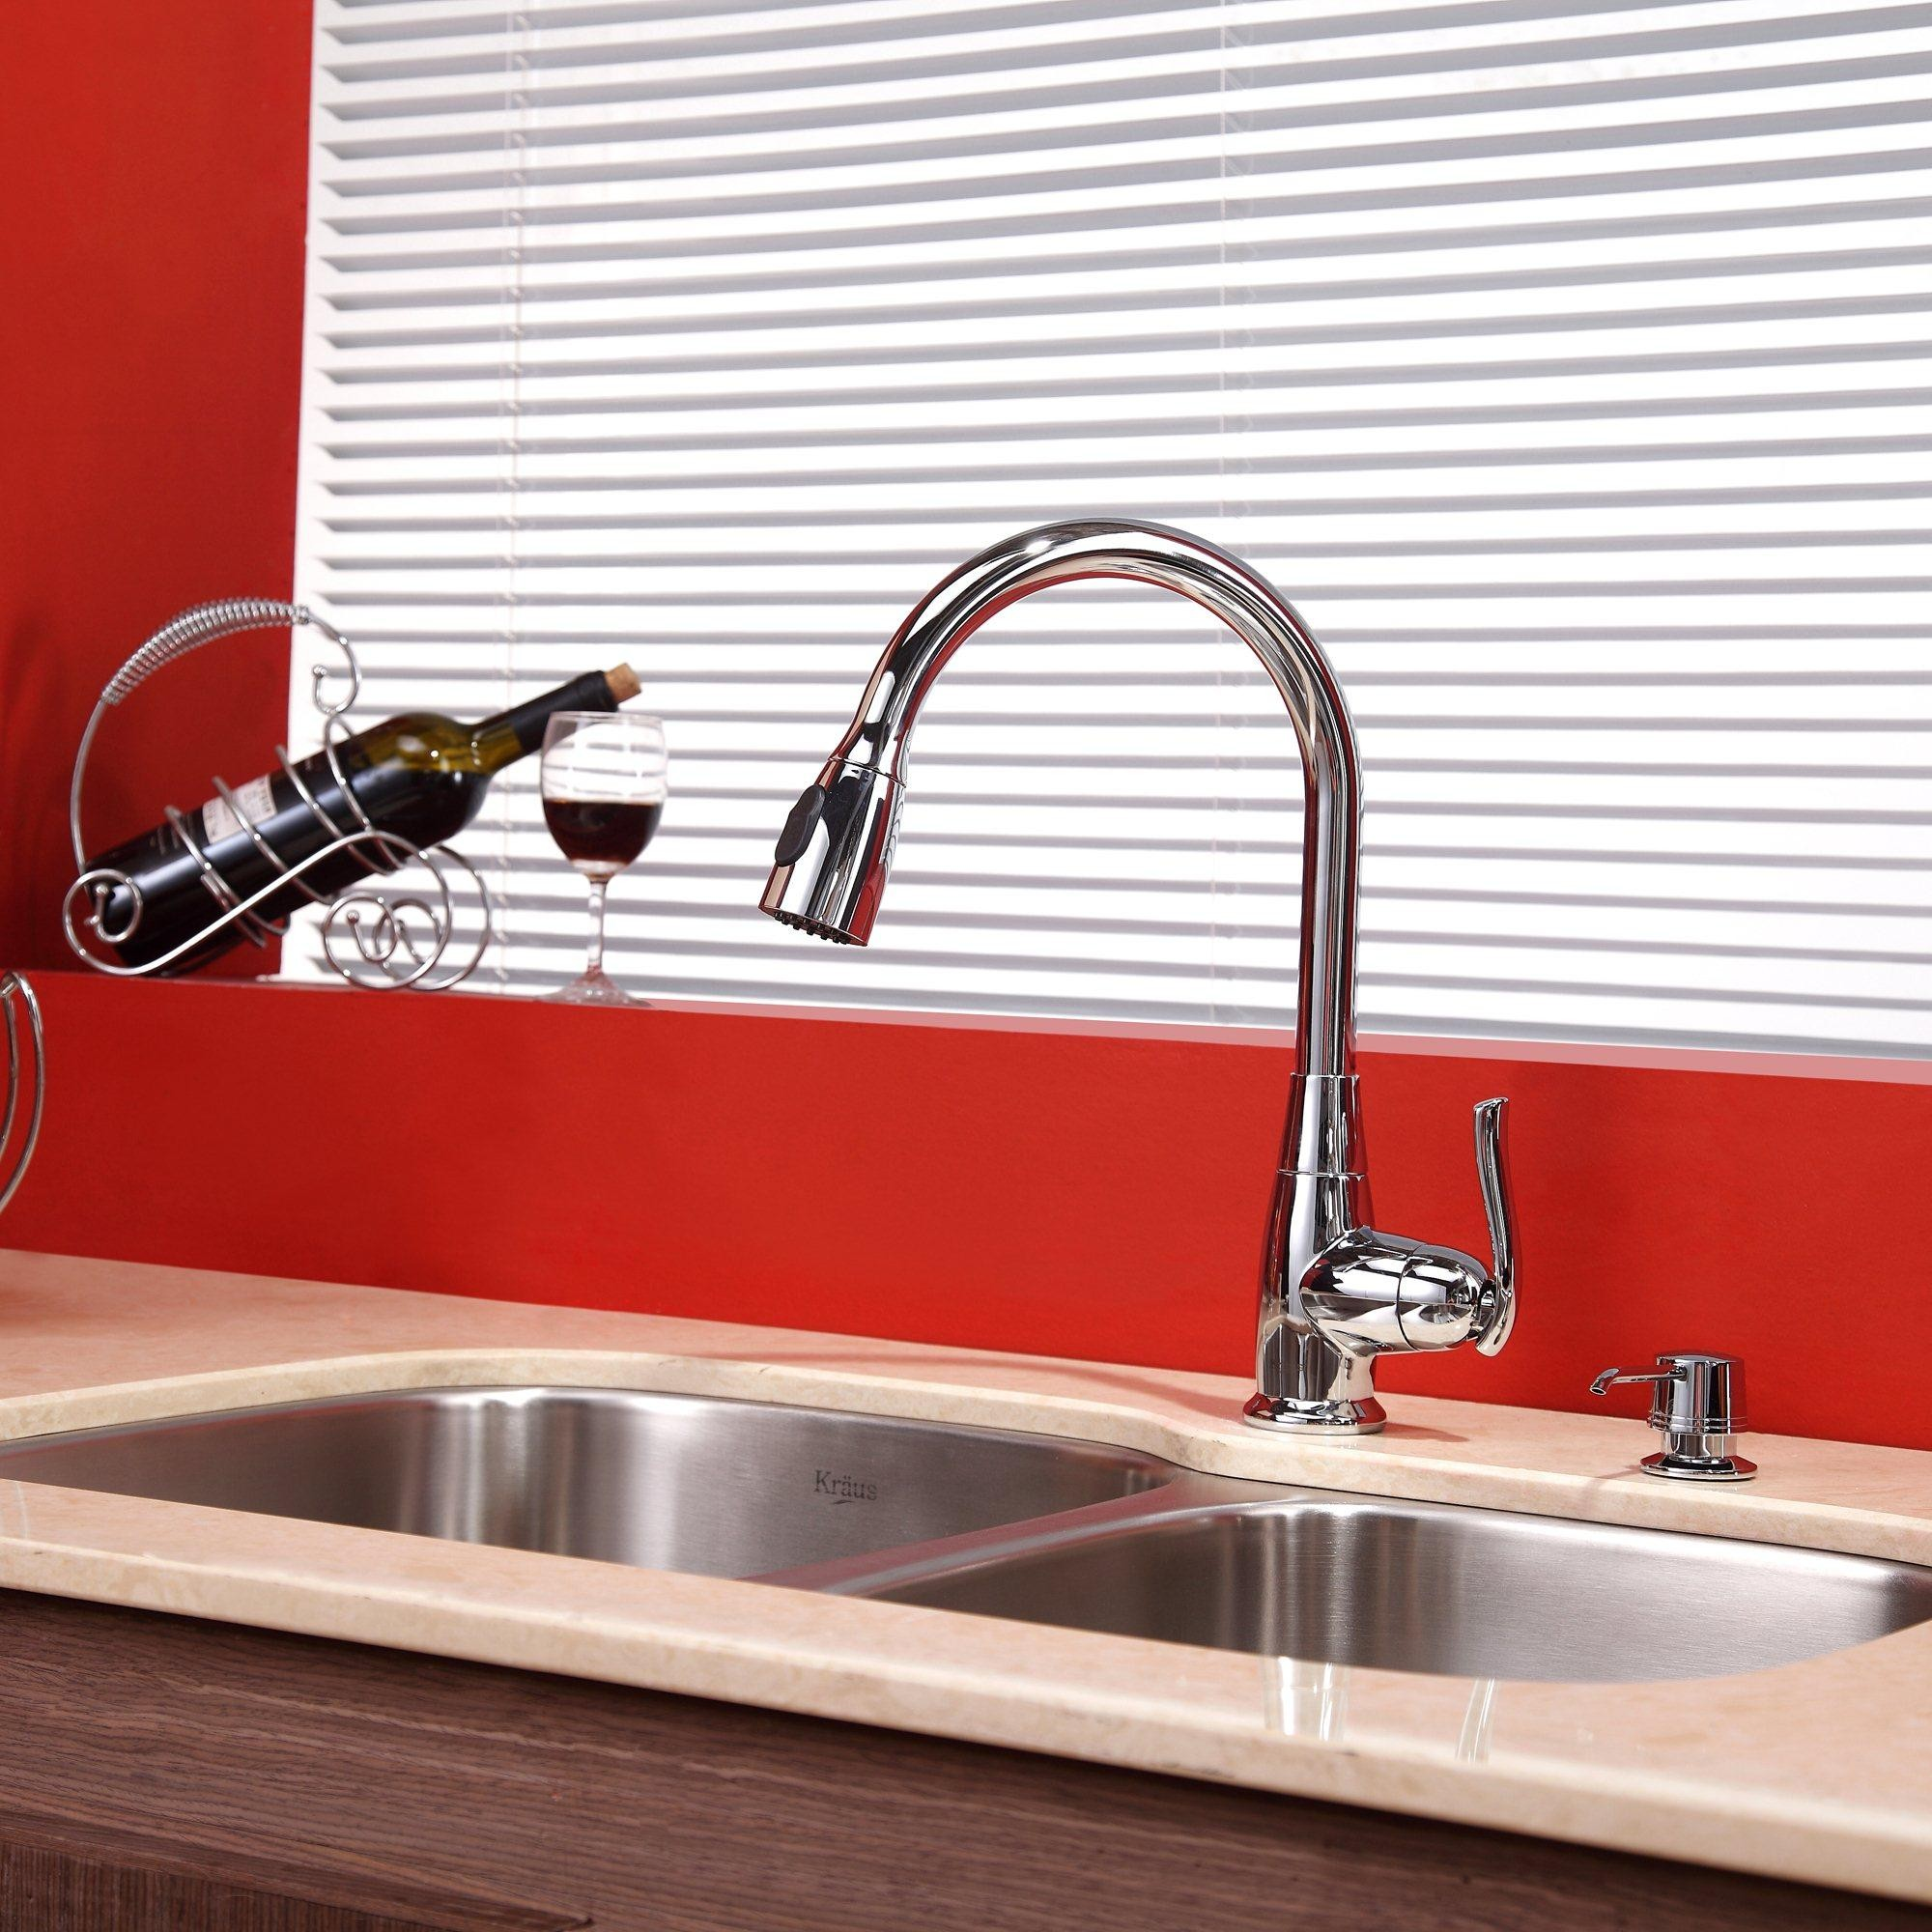 Kraus Kbu24kpf2230ksd30ch 32 Inch Undermount Double Bowl Stainless Steel Sink With Pull Down Faucet Hi Arc Spray Head 2 2 Gpm Flow Rate Basket Strainer Bottom Grid Soap Dispenser And Ada Compliant Chrome Faucet